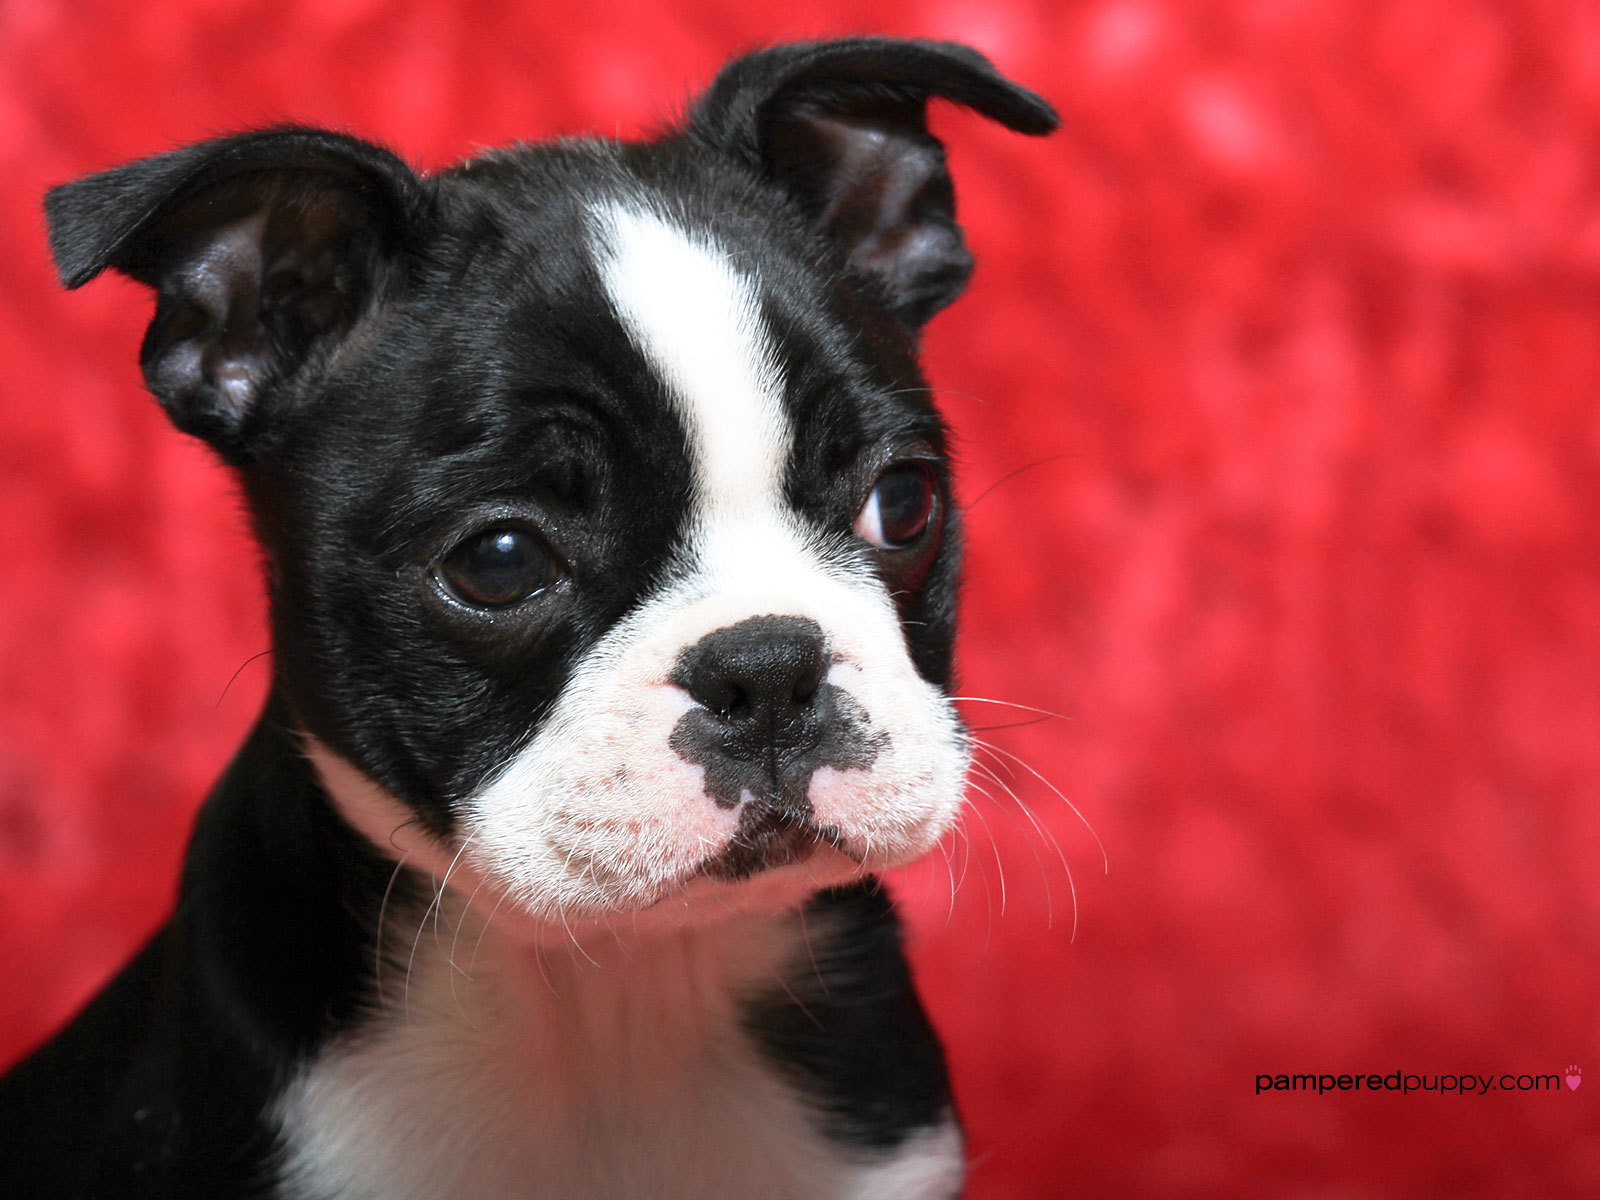 Dogs Images Boston Terrier Puppy HD Wallpaper And Background Photos